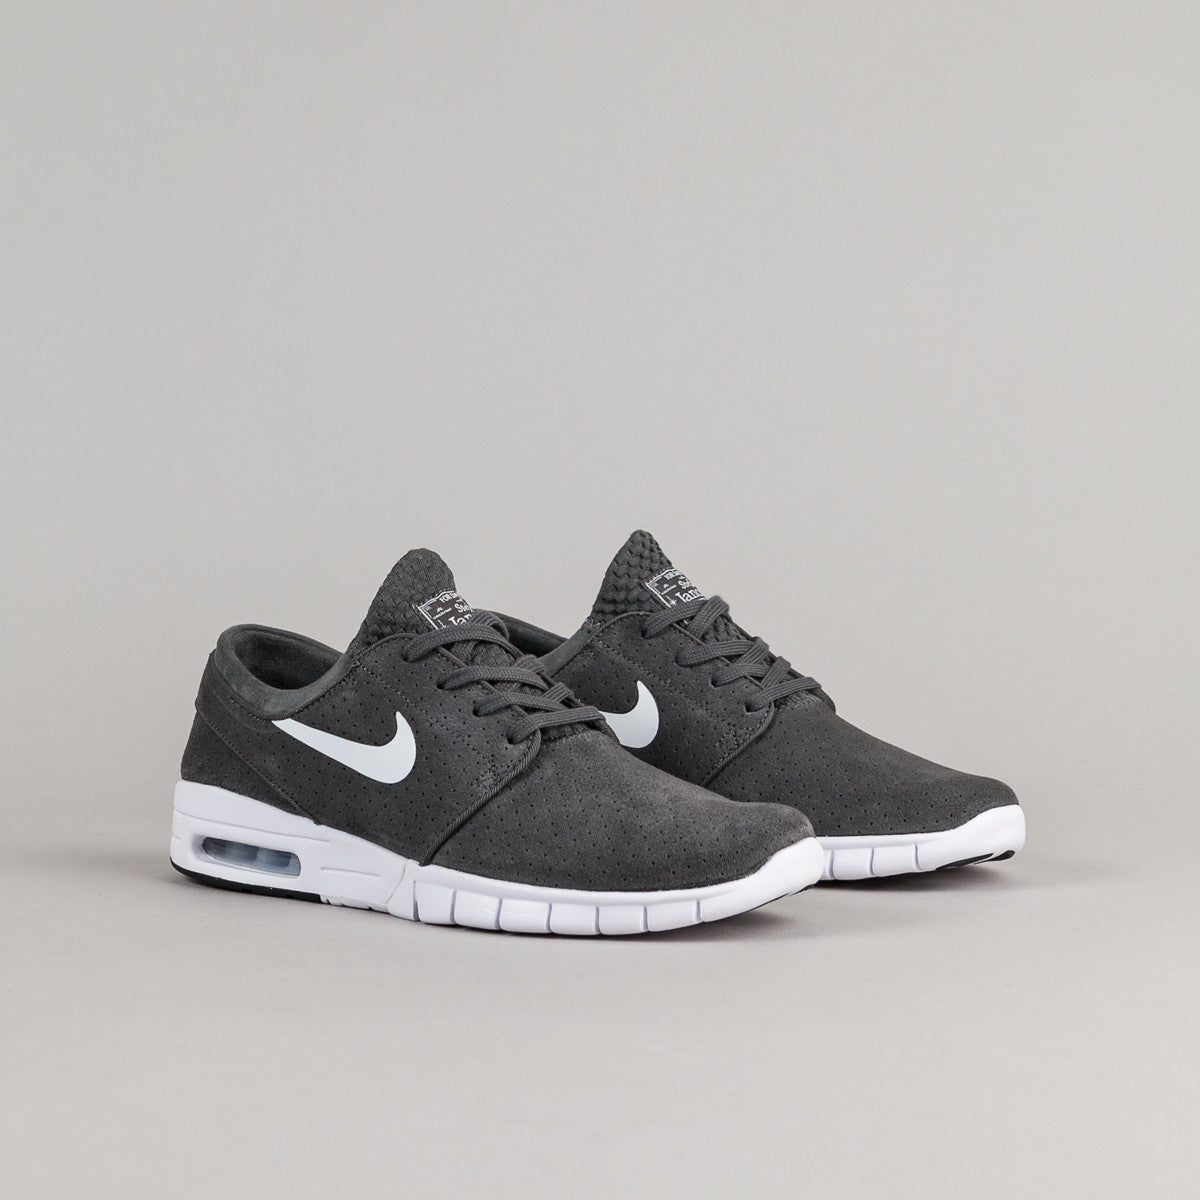 meet 00c57 05d62 ... inexpensive nike sb shoes janoski all black suede nike sb stefan  janoski max d6830 dc517 ...